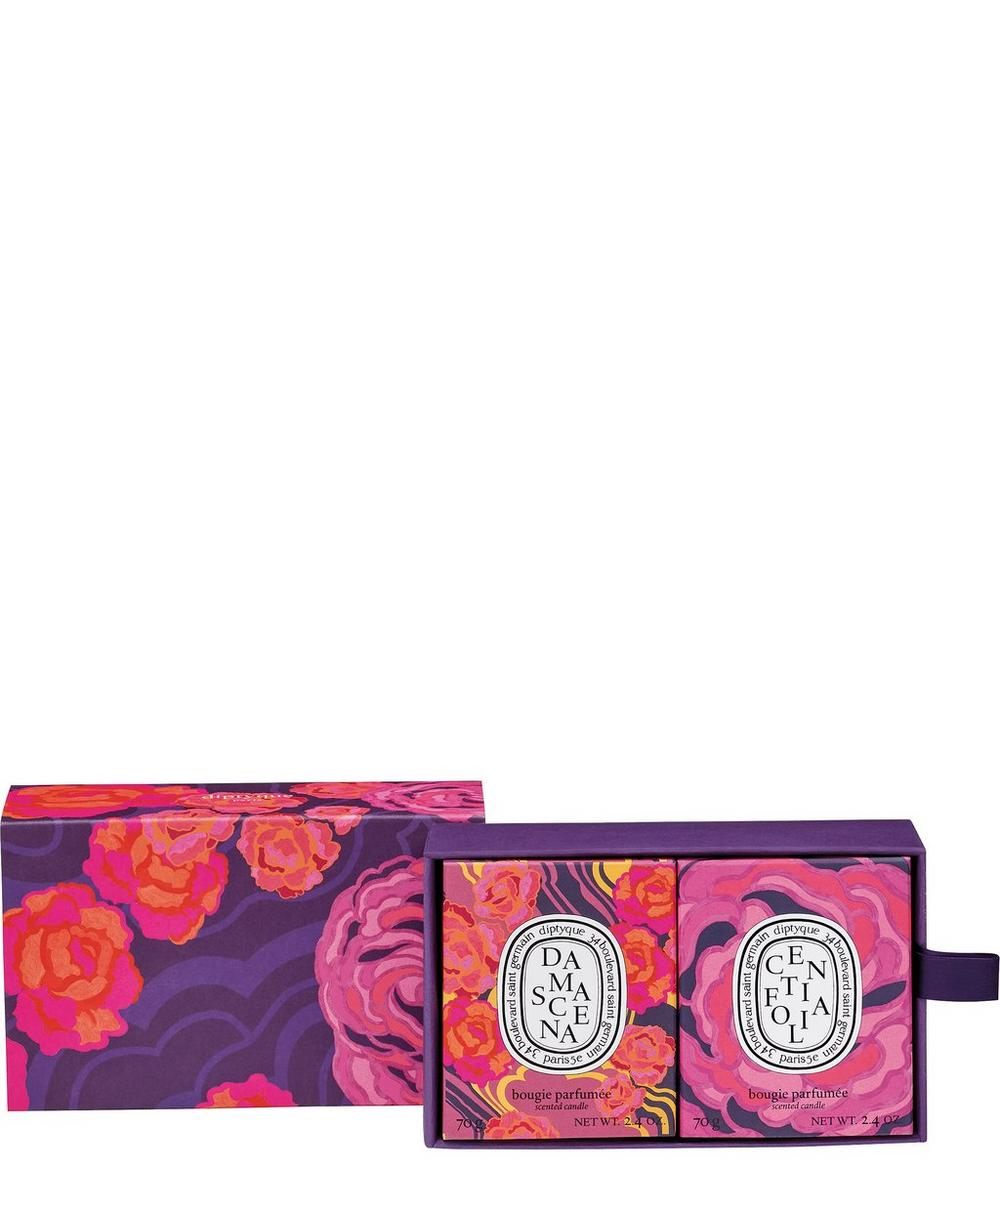 Limited Edition Centifolia Damascena Scented Candle Set 2 X 70G